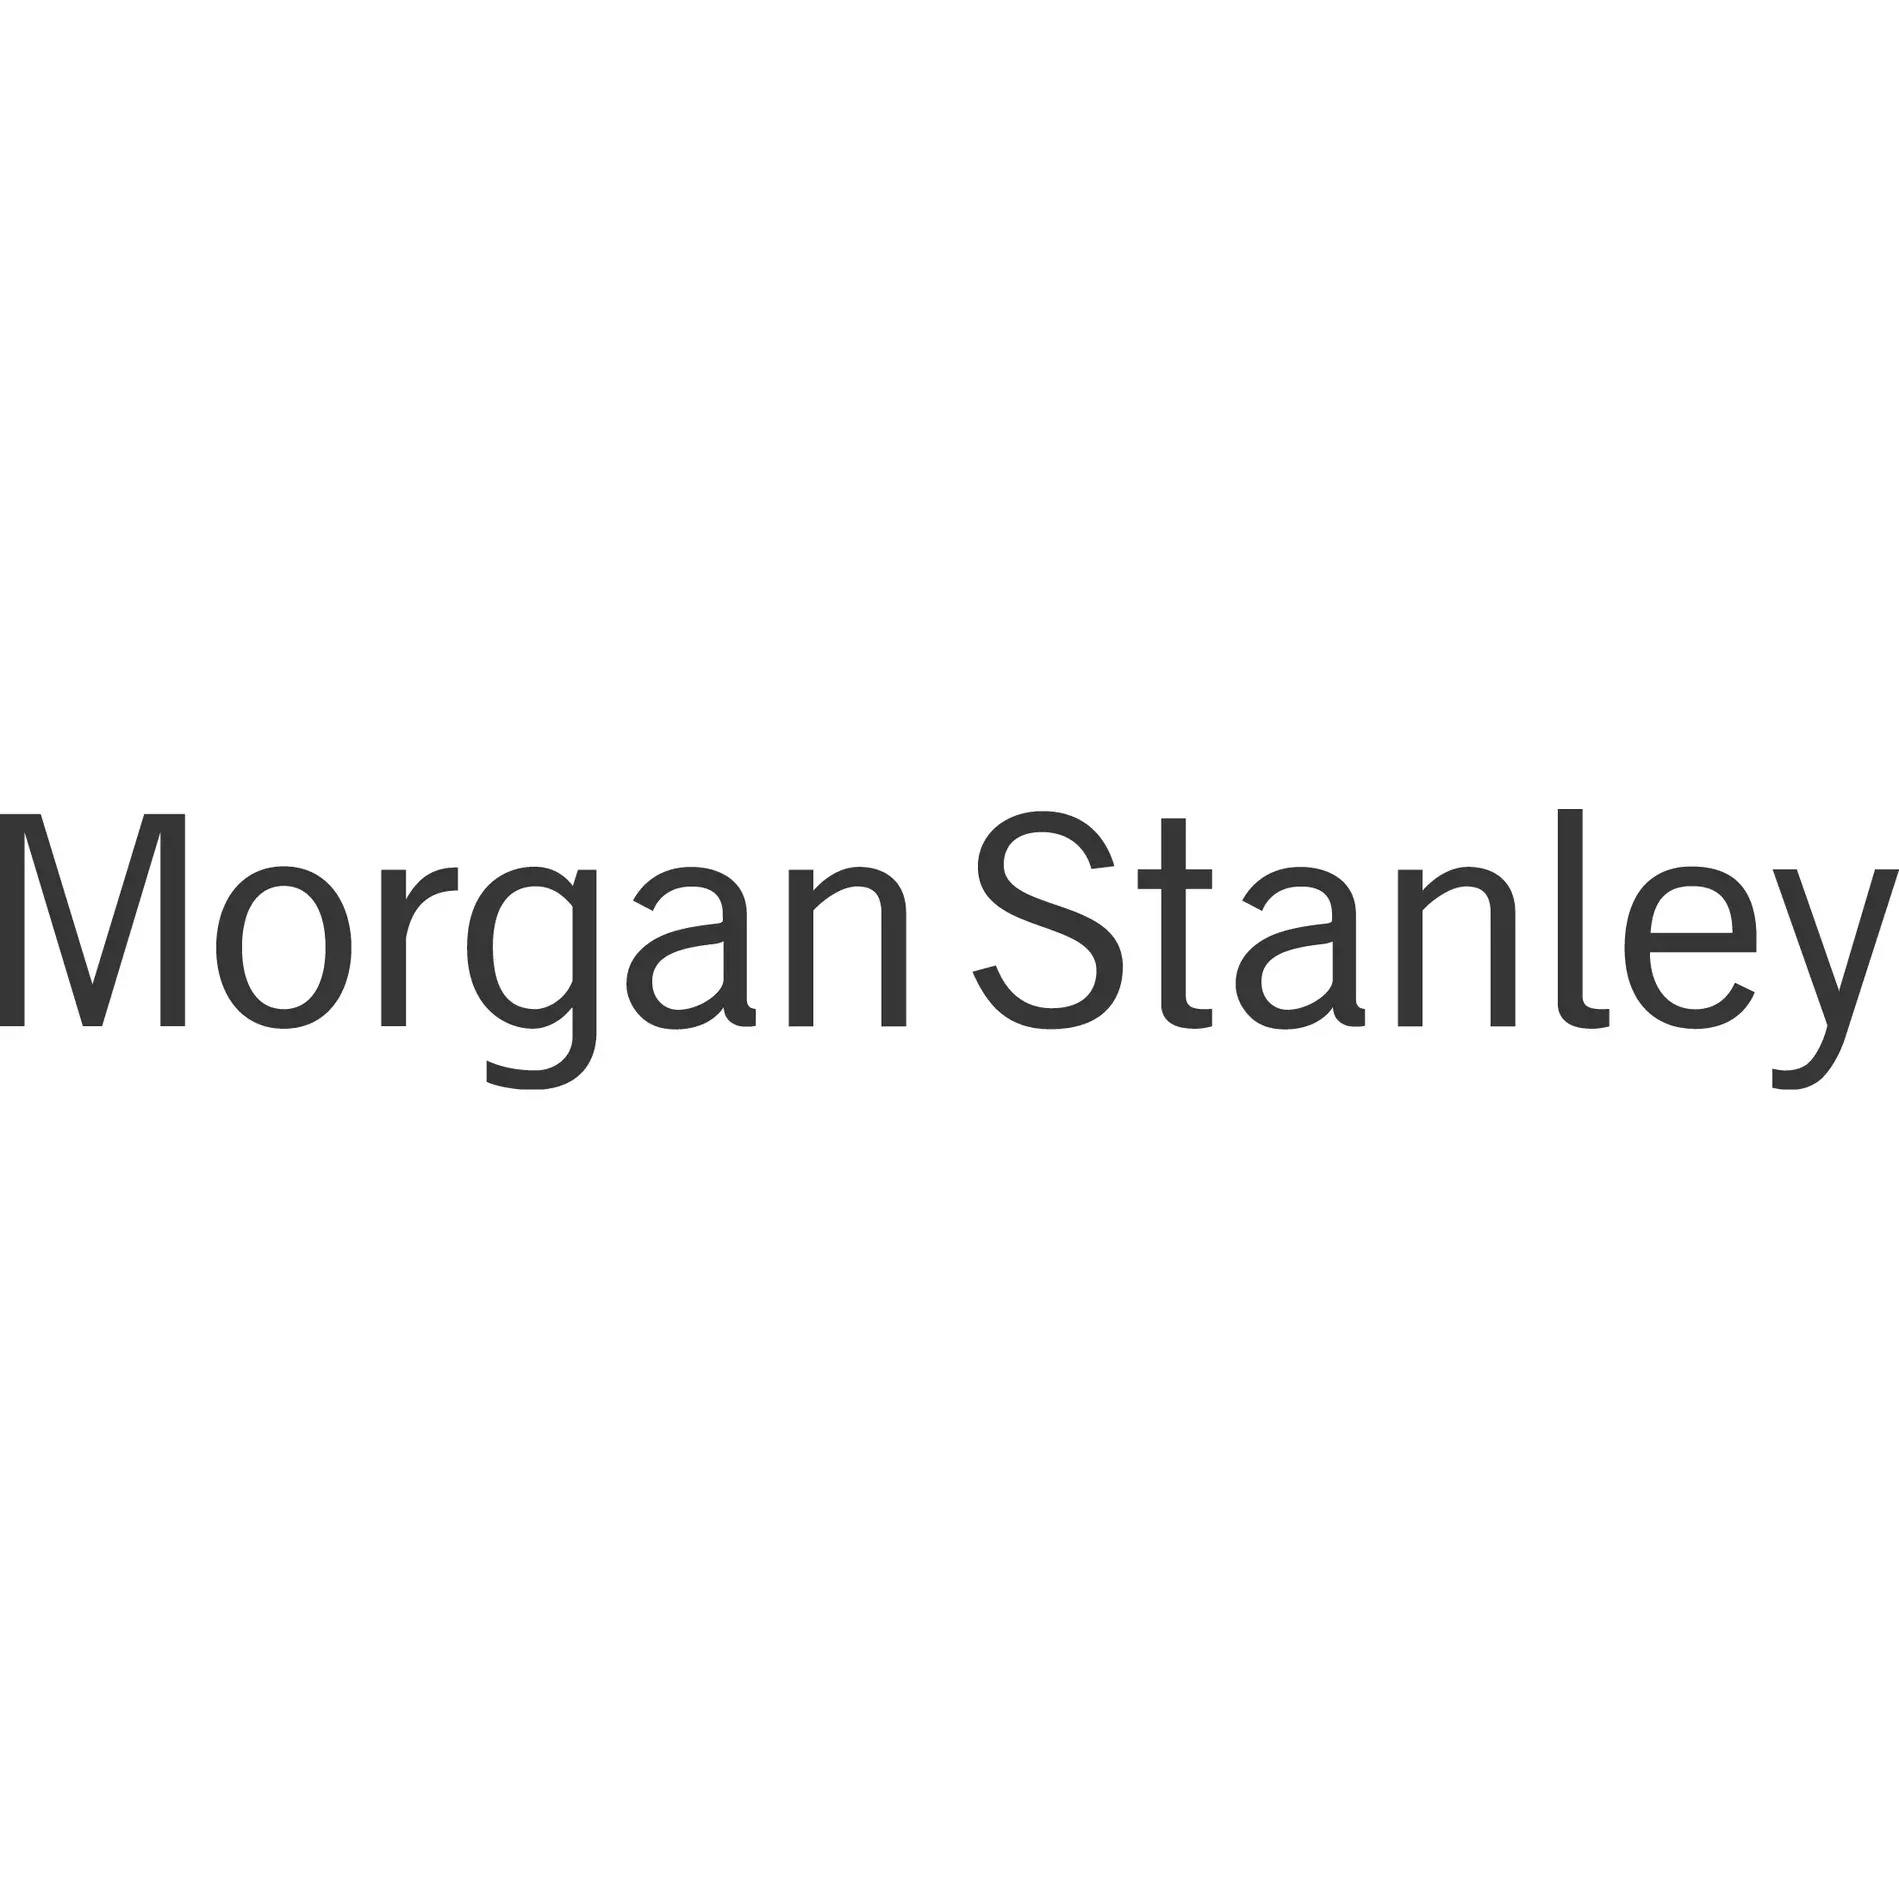 The Wright Group - Morgan Stanley